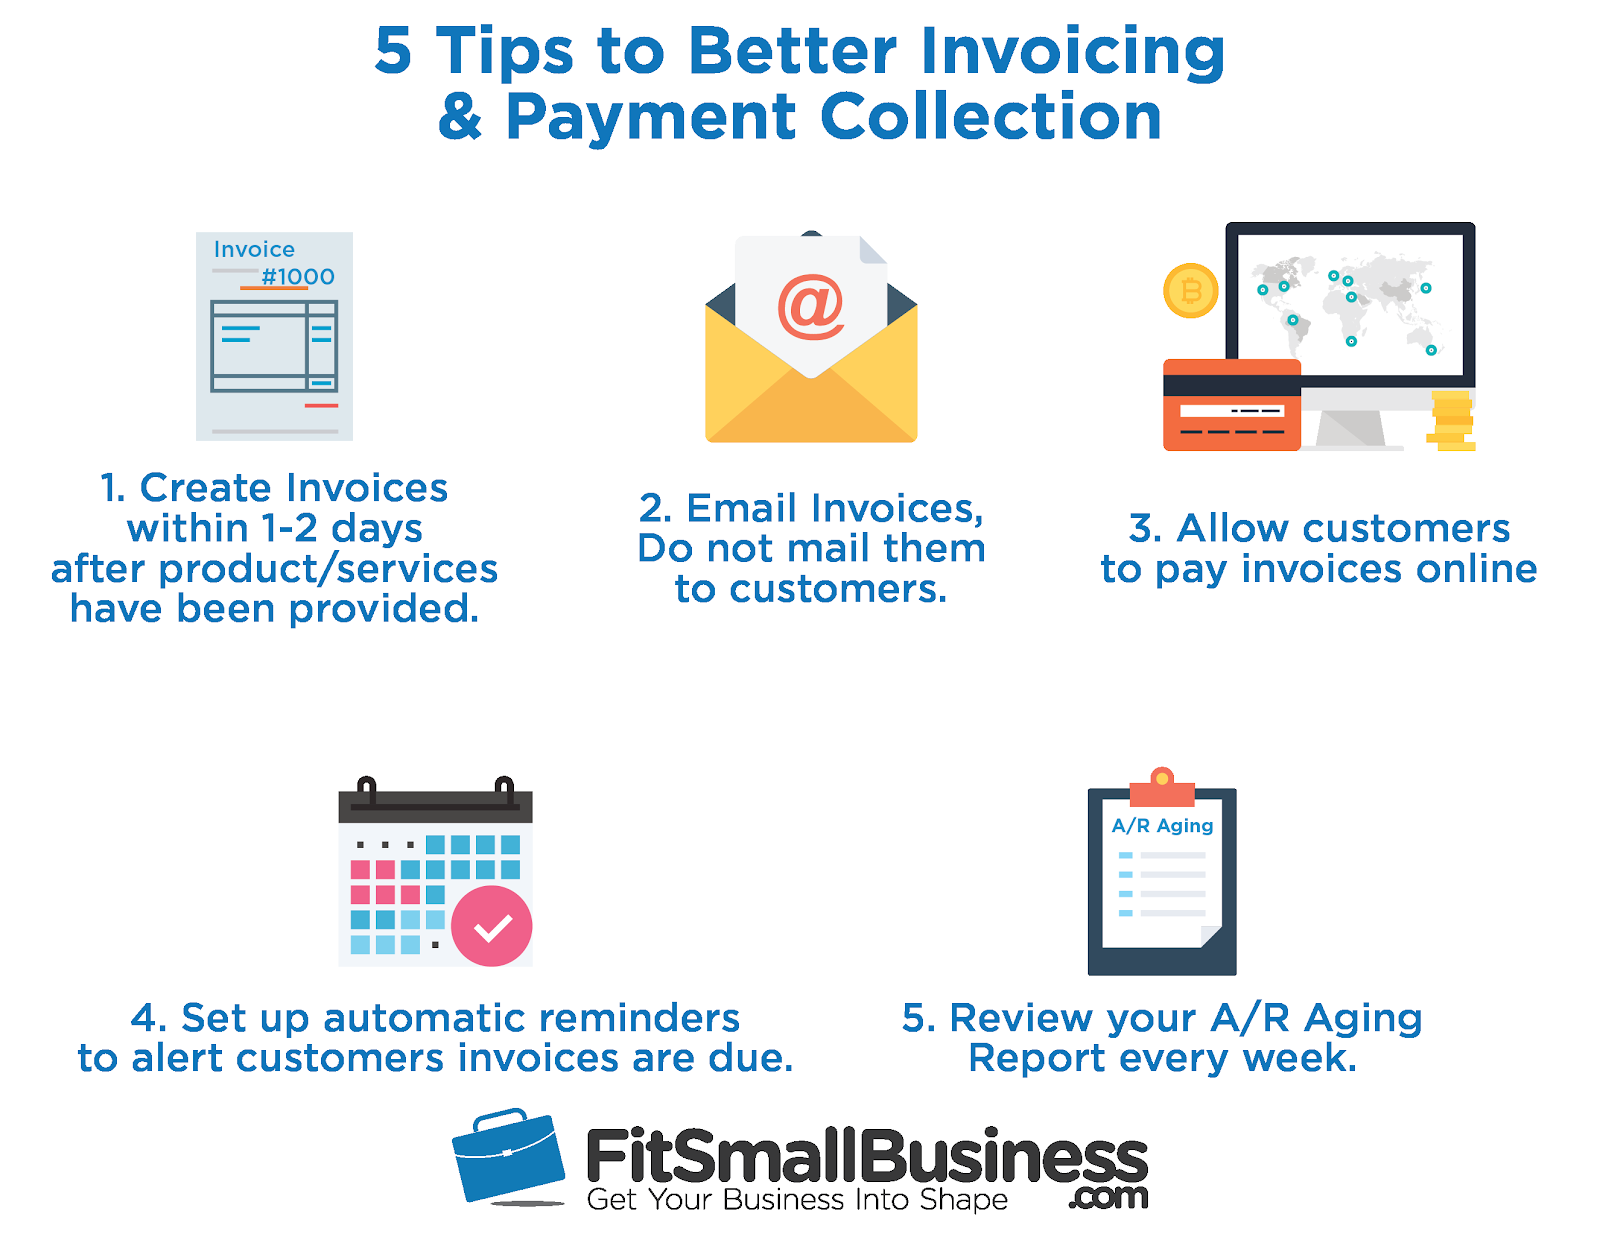 5 tips for better invoicing